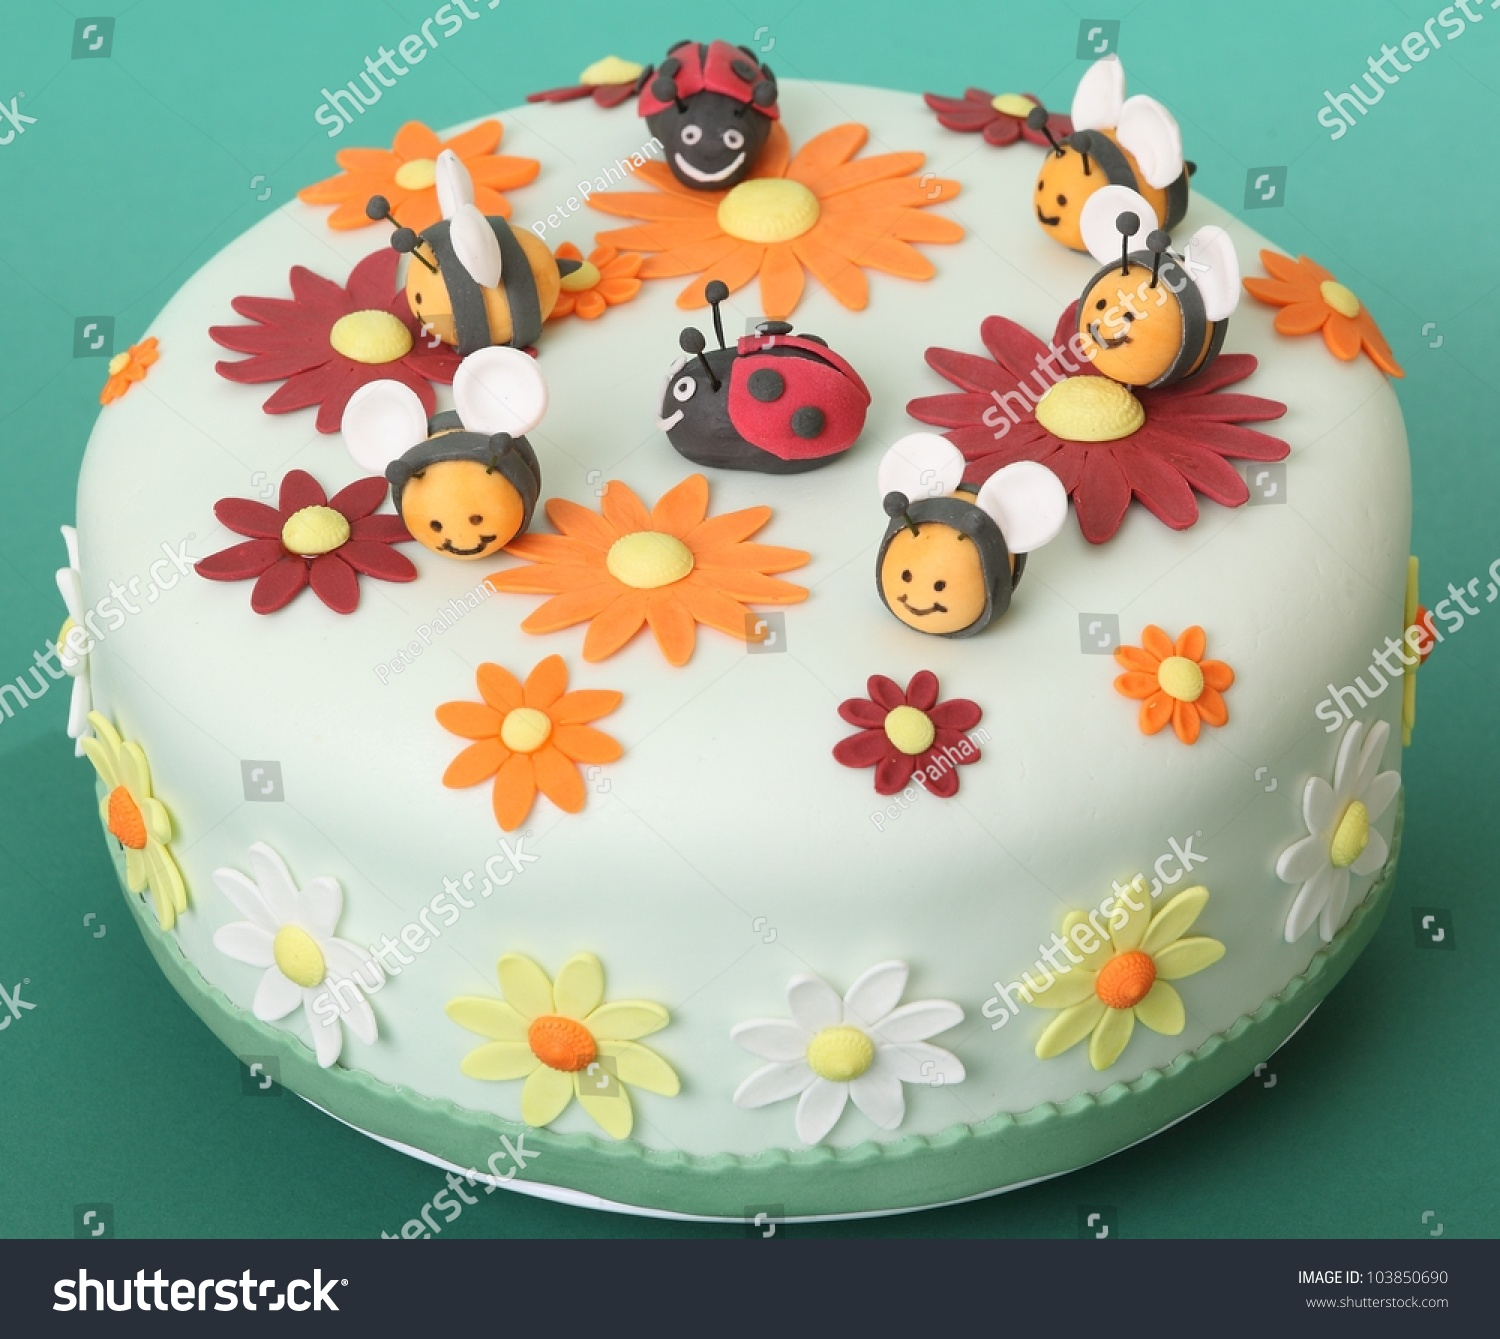 Birthday cake flowers sugar bees ladybugs stock photo edit now birthday cake with flowers sugar bees and ladybugs izmirmasajfo